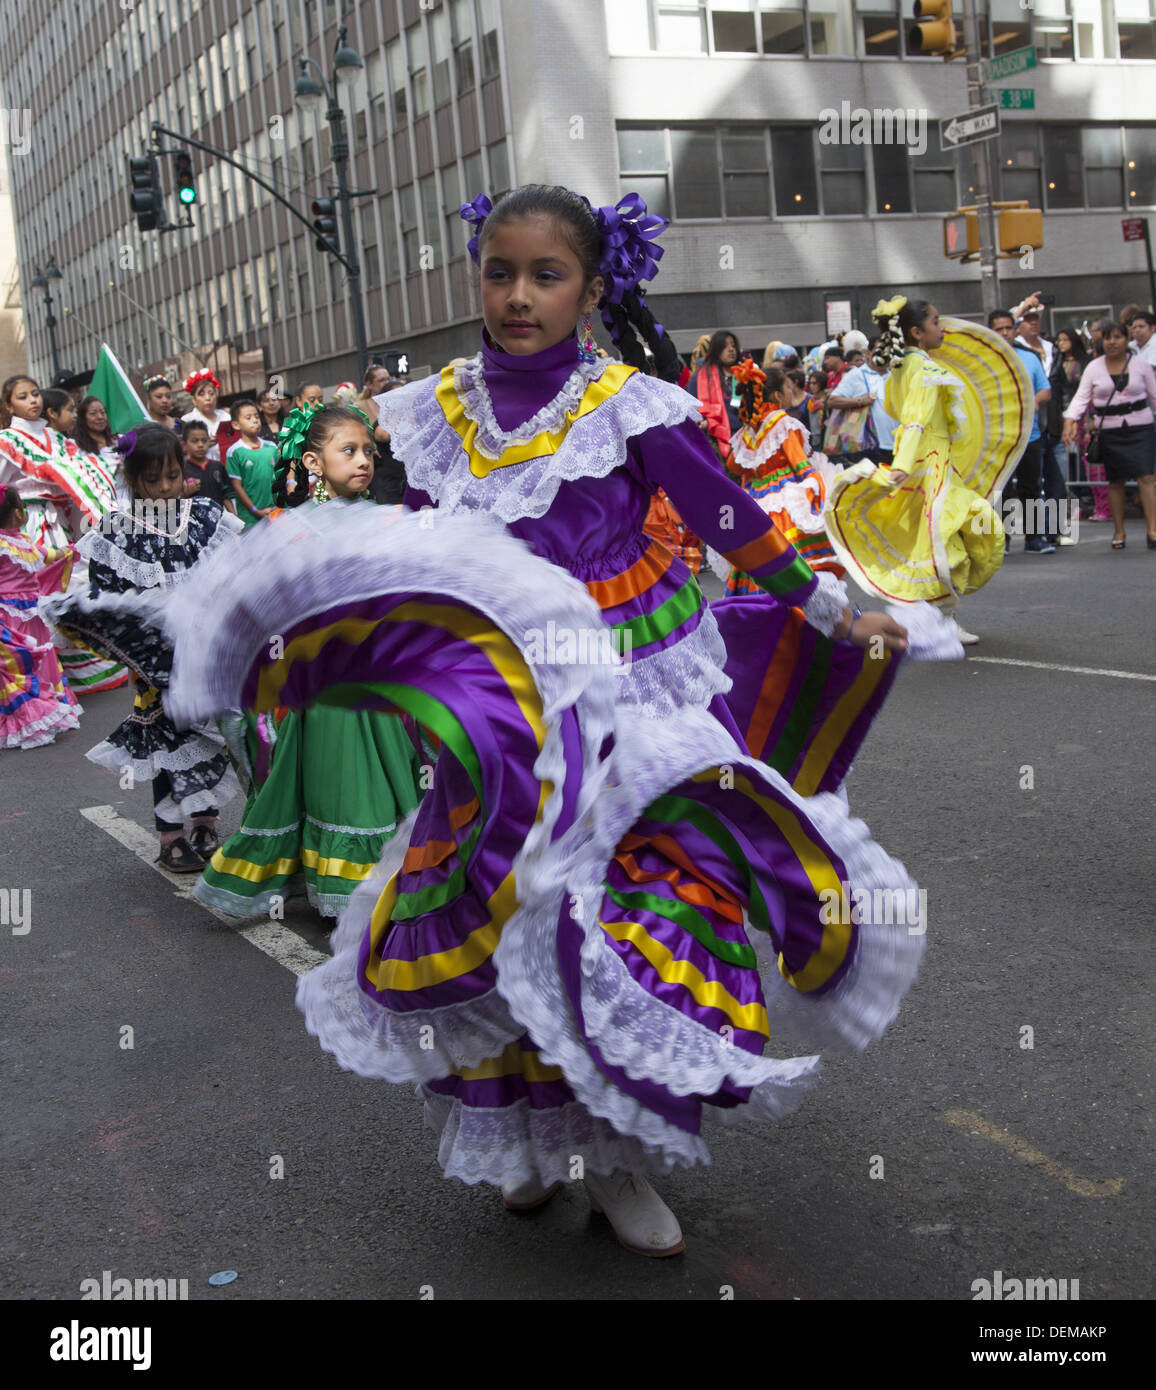 Mexican Independence Day Parade on Madison Avenue, NYC. - Stock Image